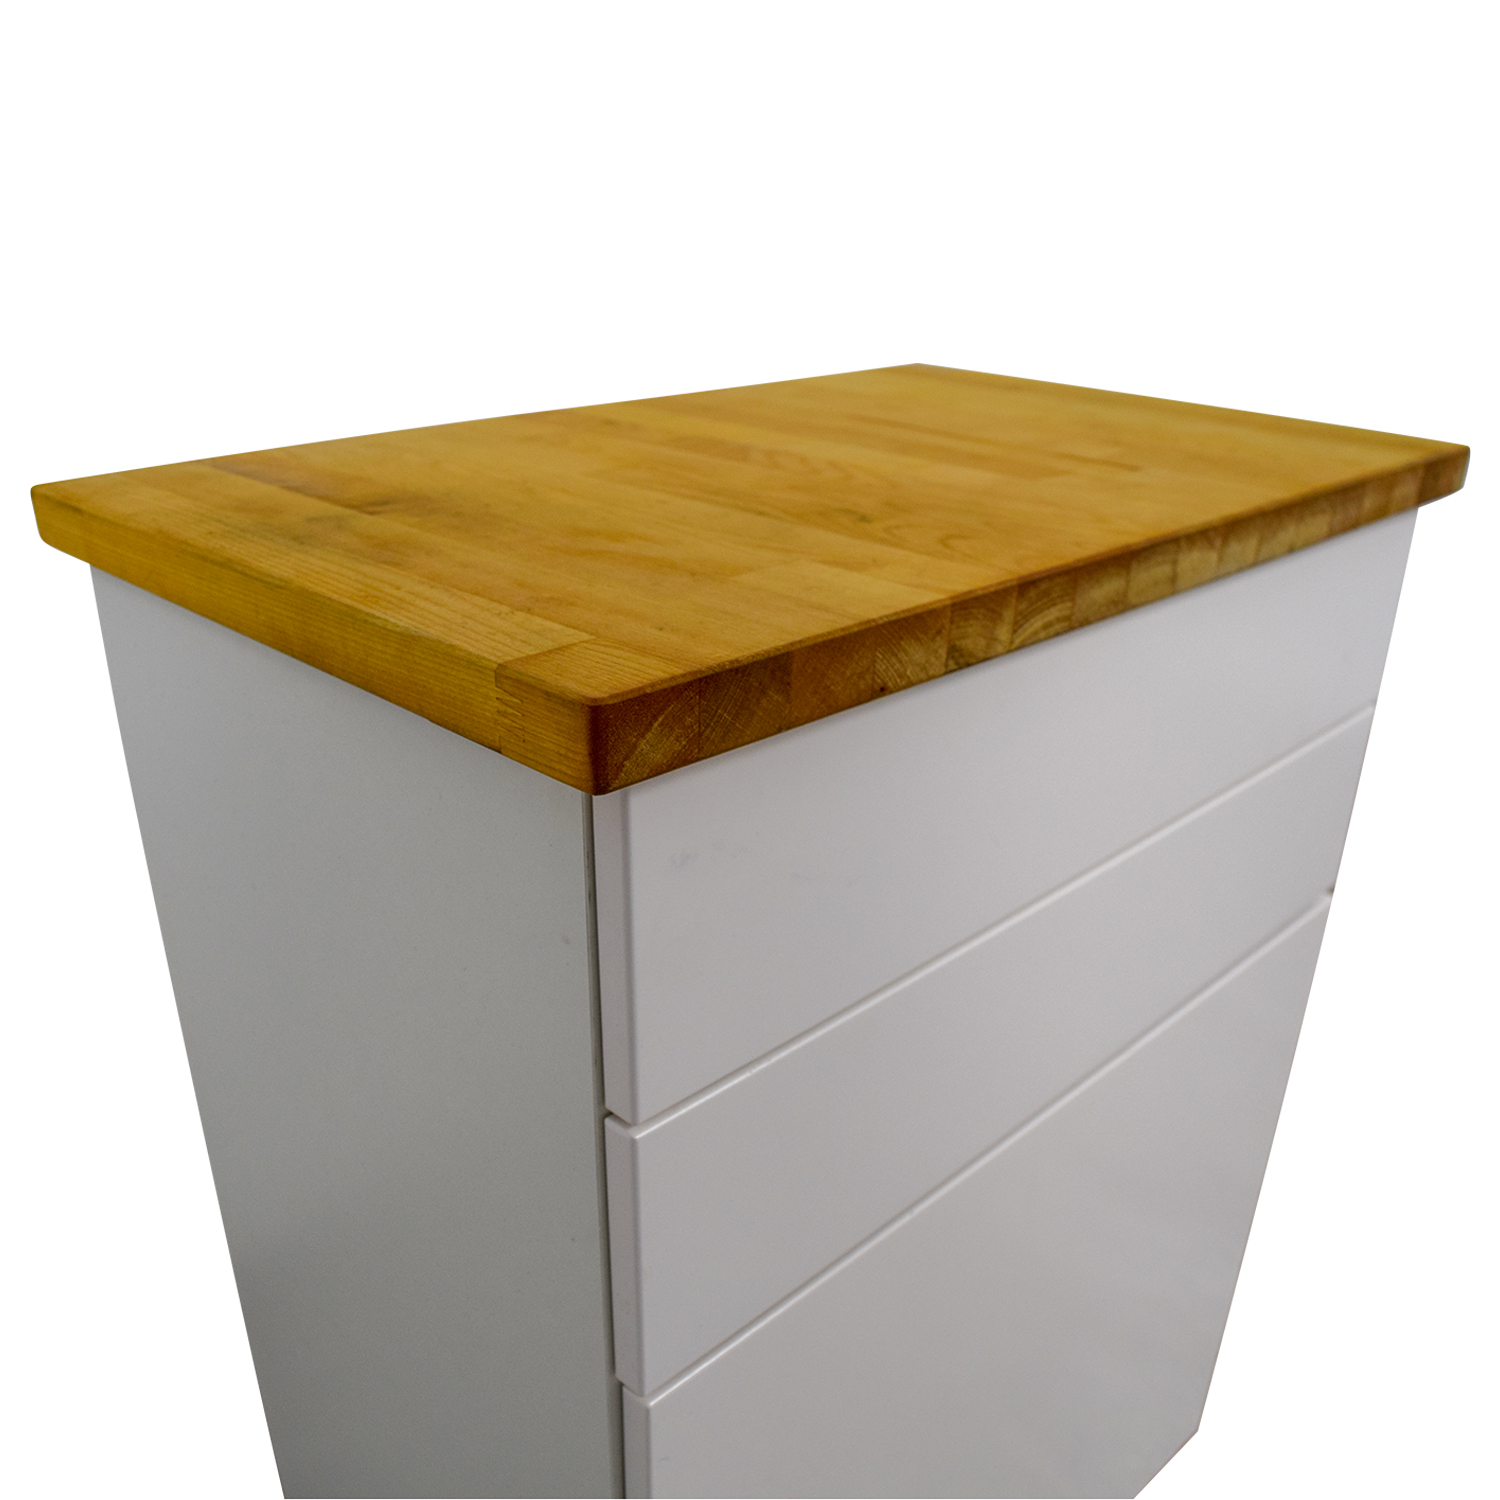 74 off ikea ikea white butcher block counter cabinet with two drawers tables. Black Bedroom Furniture Sets. Home Design Ideas